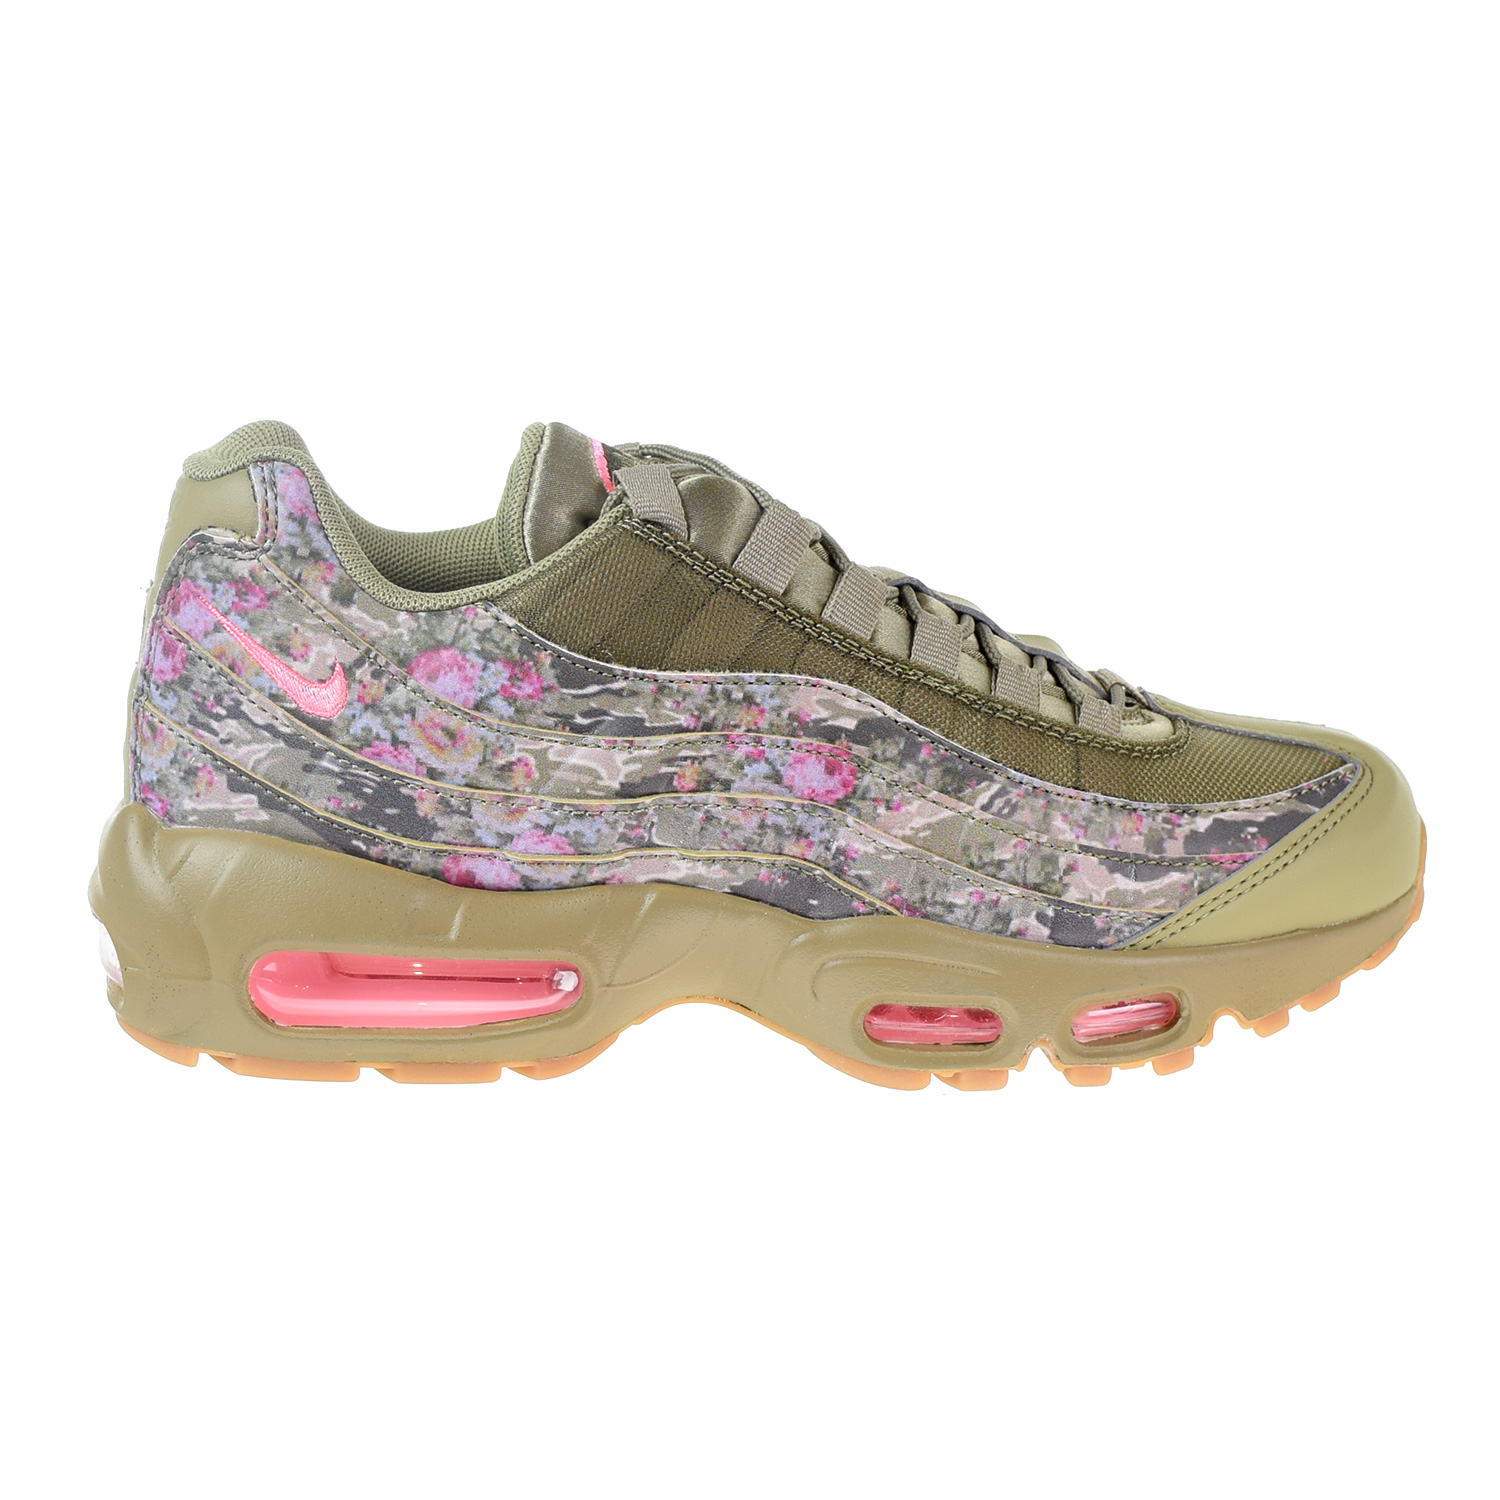 78bc2066d2 Details about Nike Air Max 95 Women's Shoes Neutral Olive/Arctic Punch  AQ6385-200